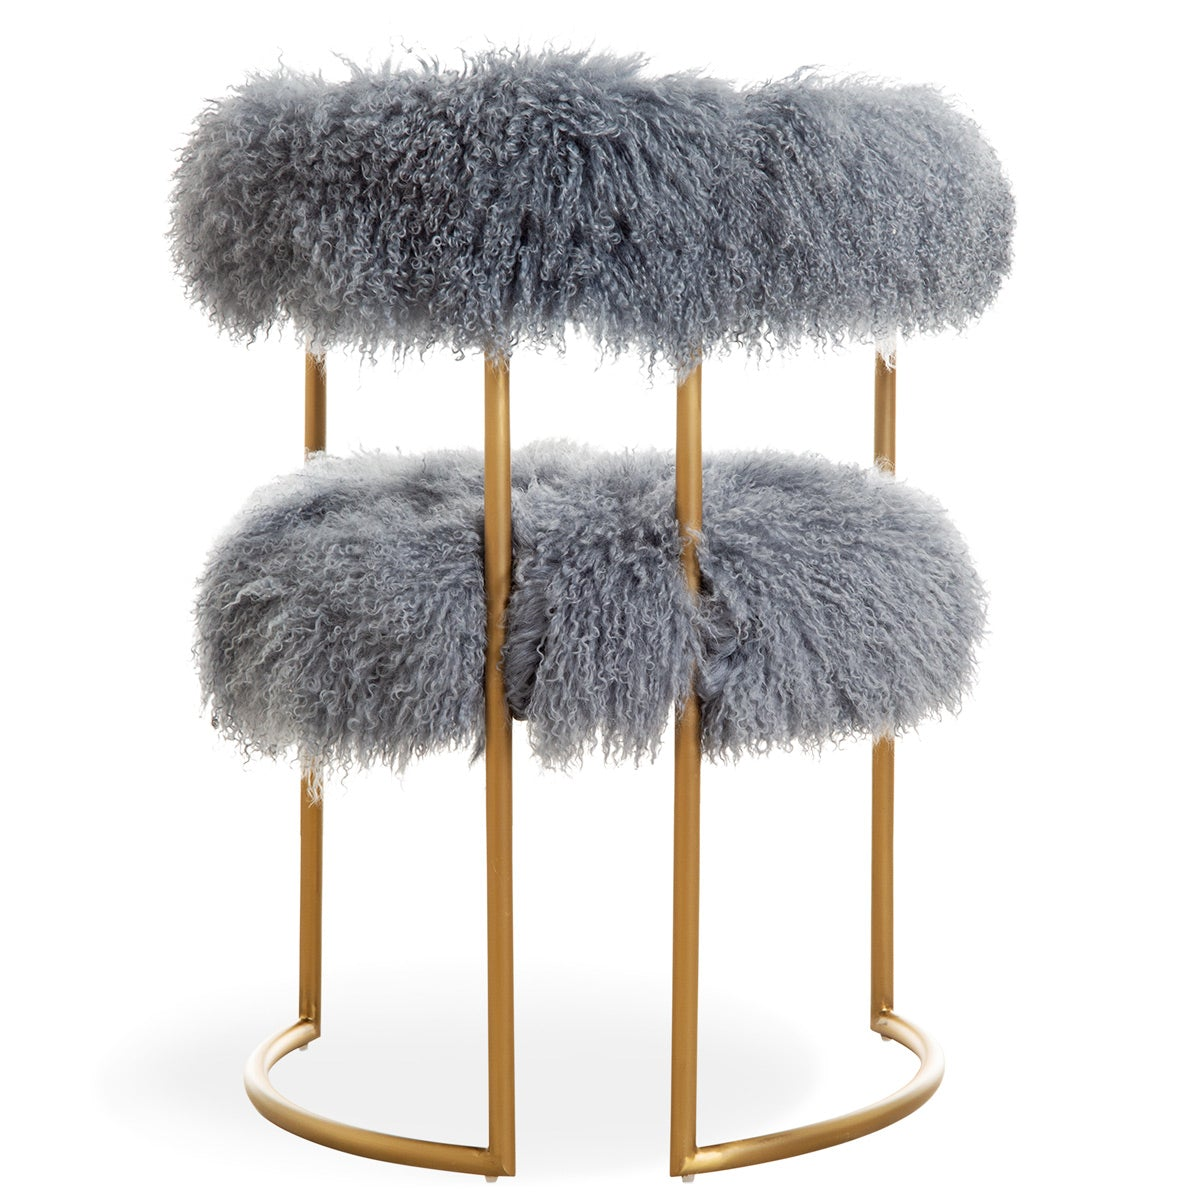 Acapulco 2 Dining Chair in Steel Mongolian Fur - ModShop1.com